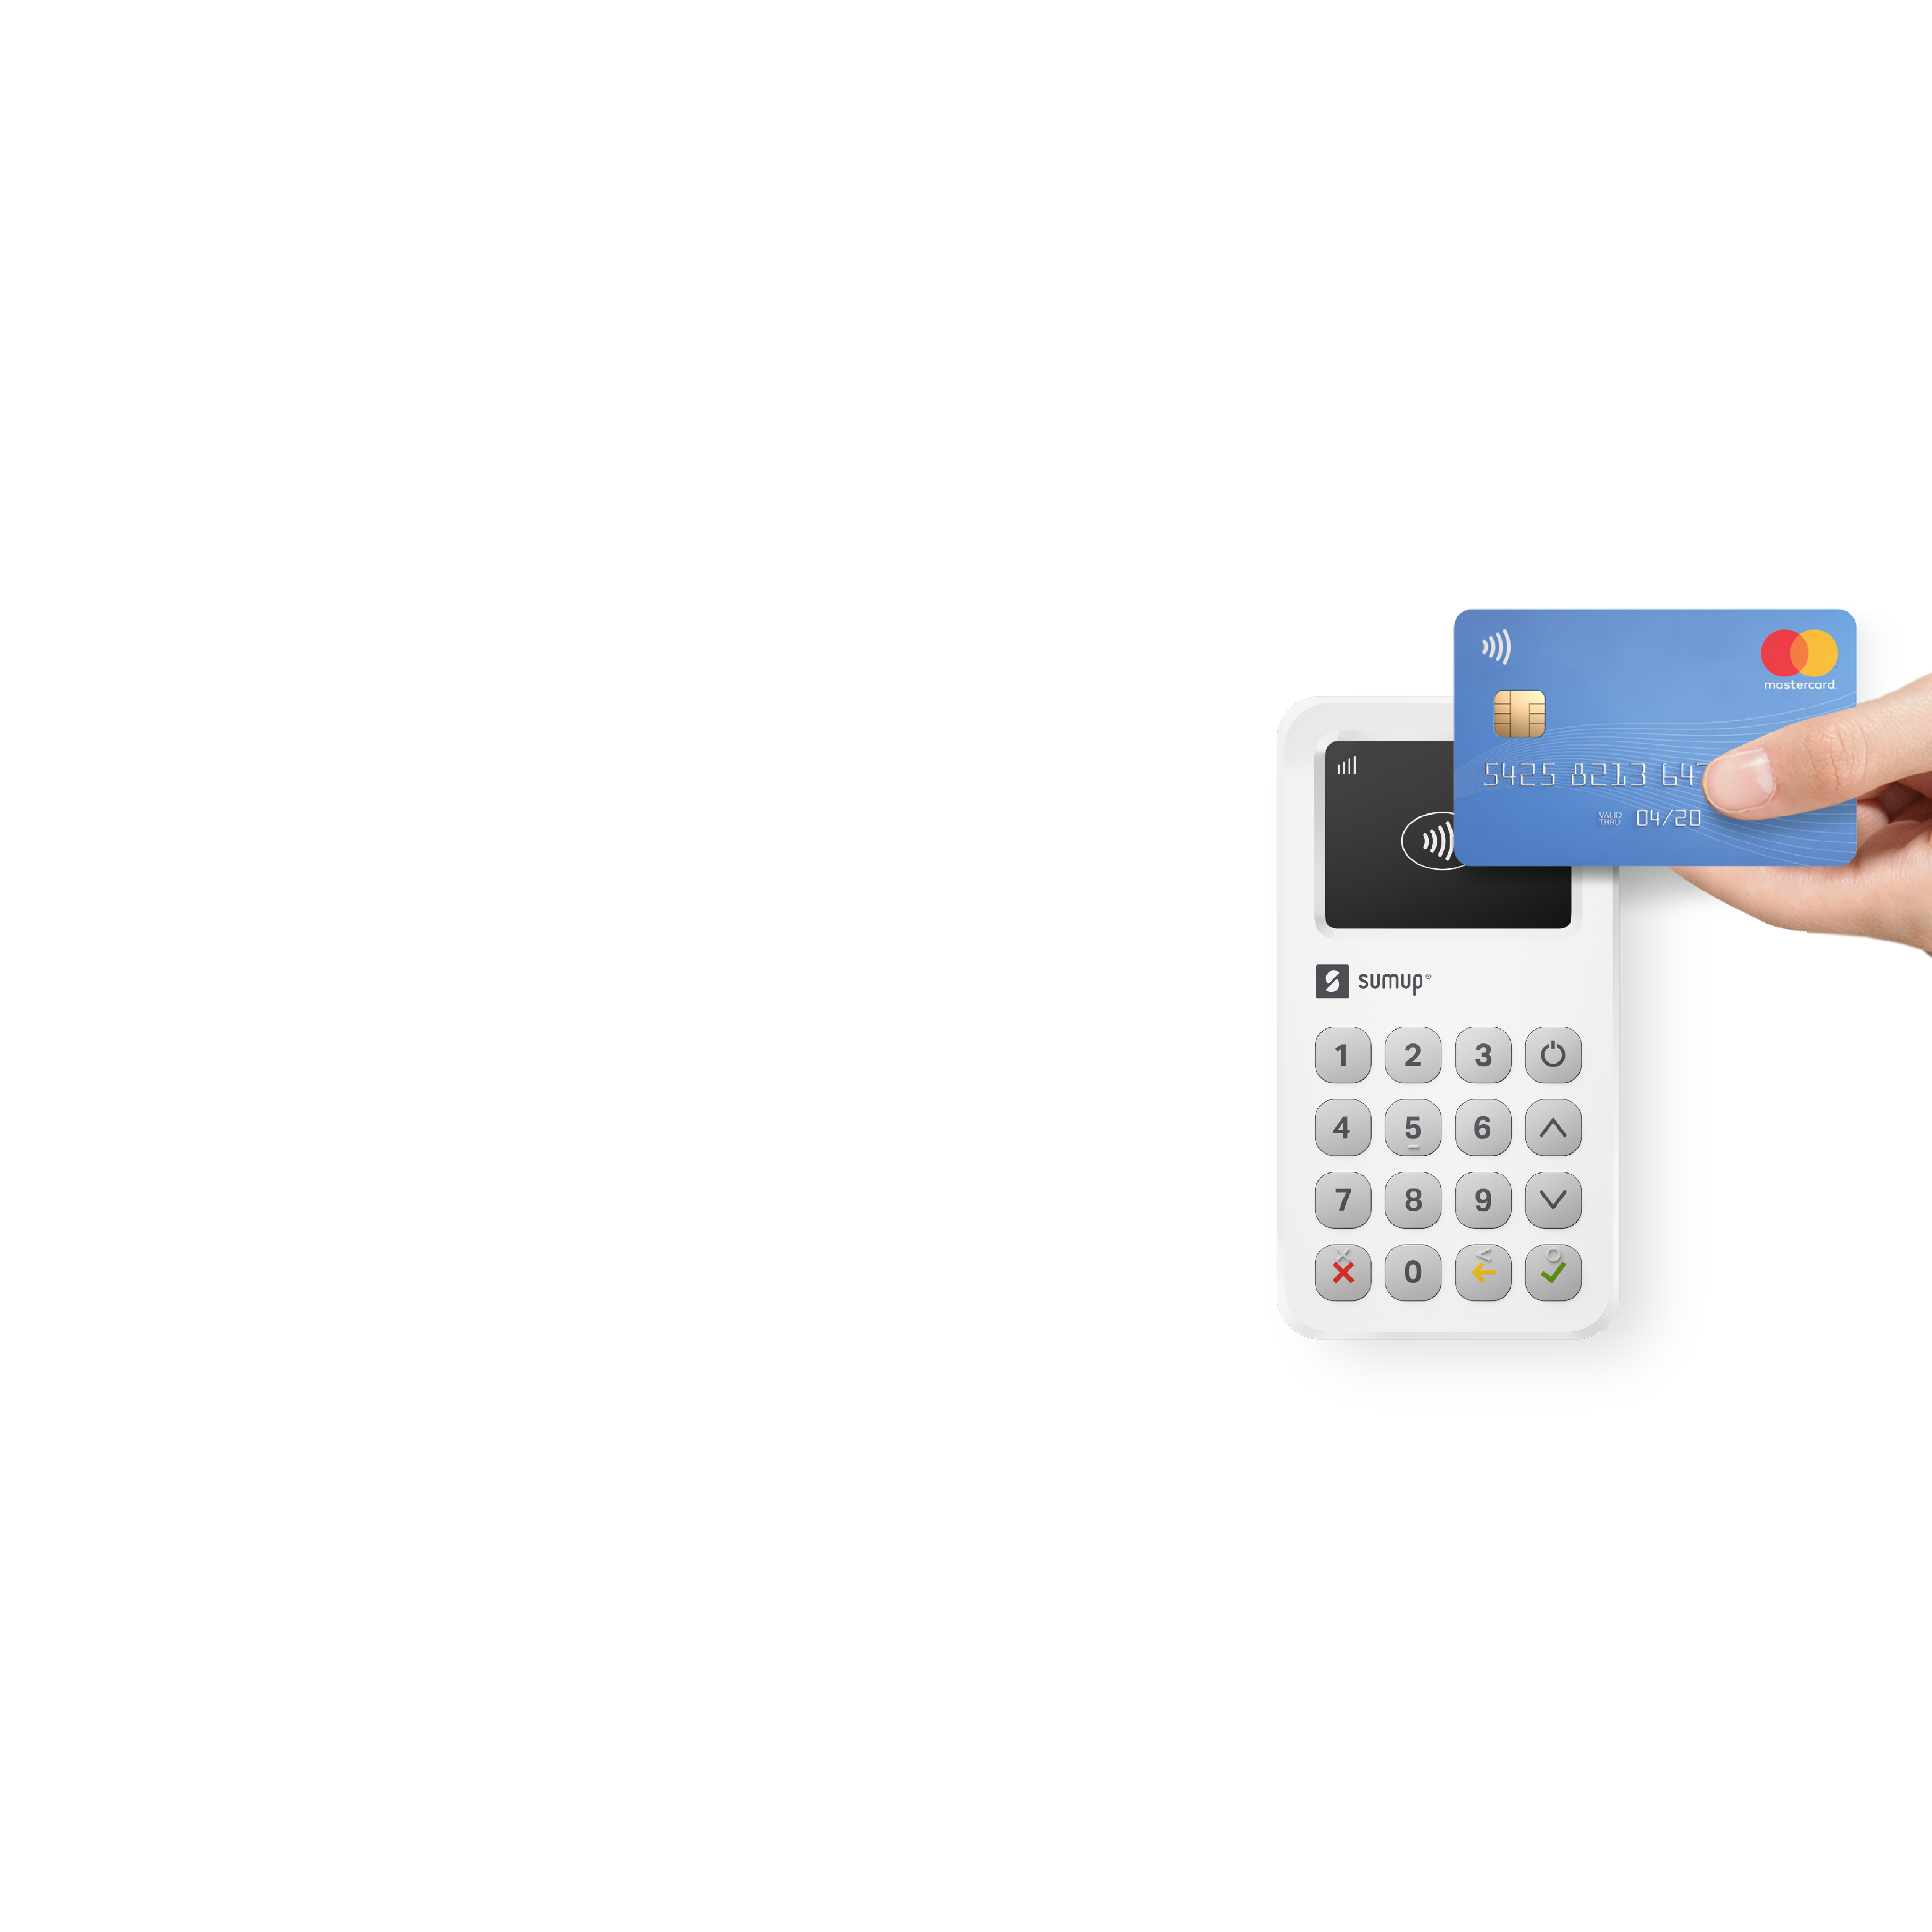 Credit Card Machines - Mobile Chip and PIN Payment Solution | SumUp